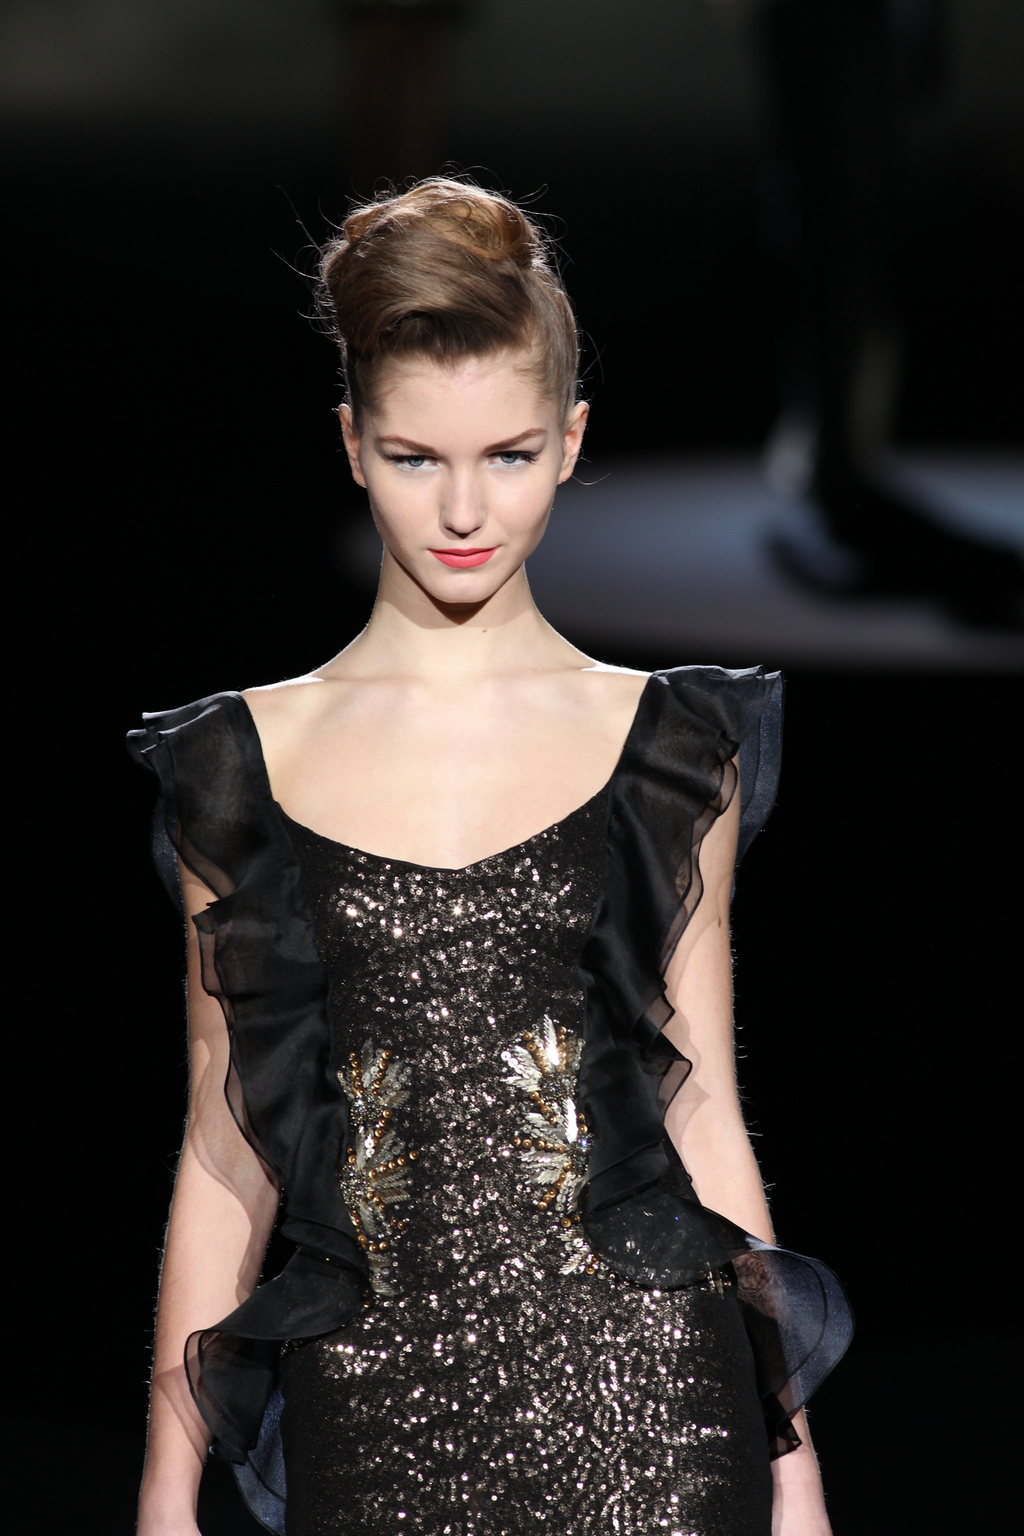 M Badgley Mischka FW13 39